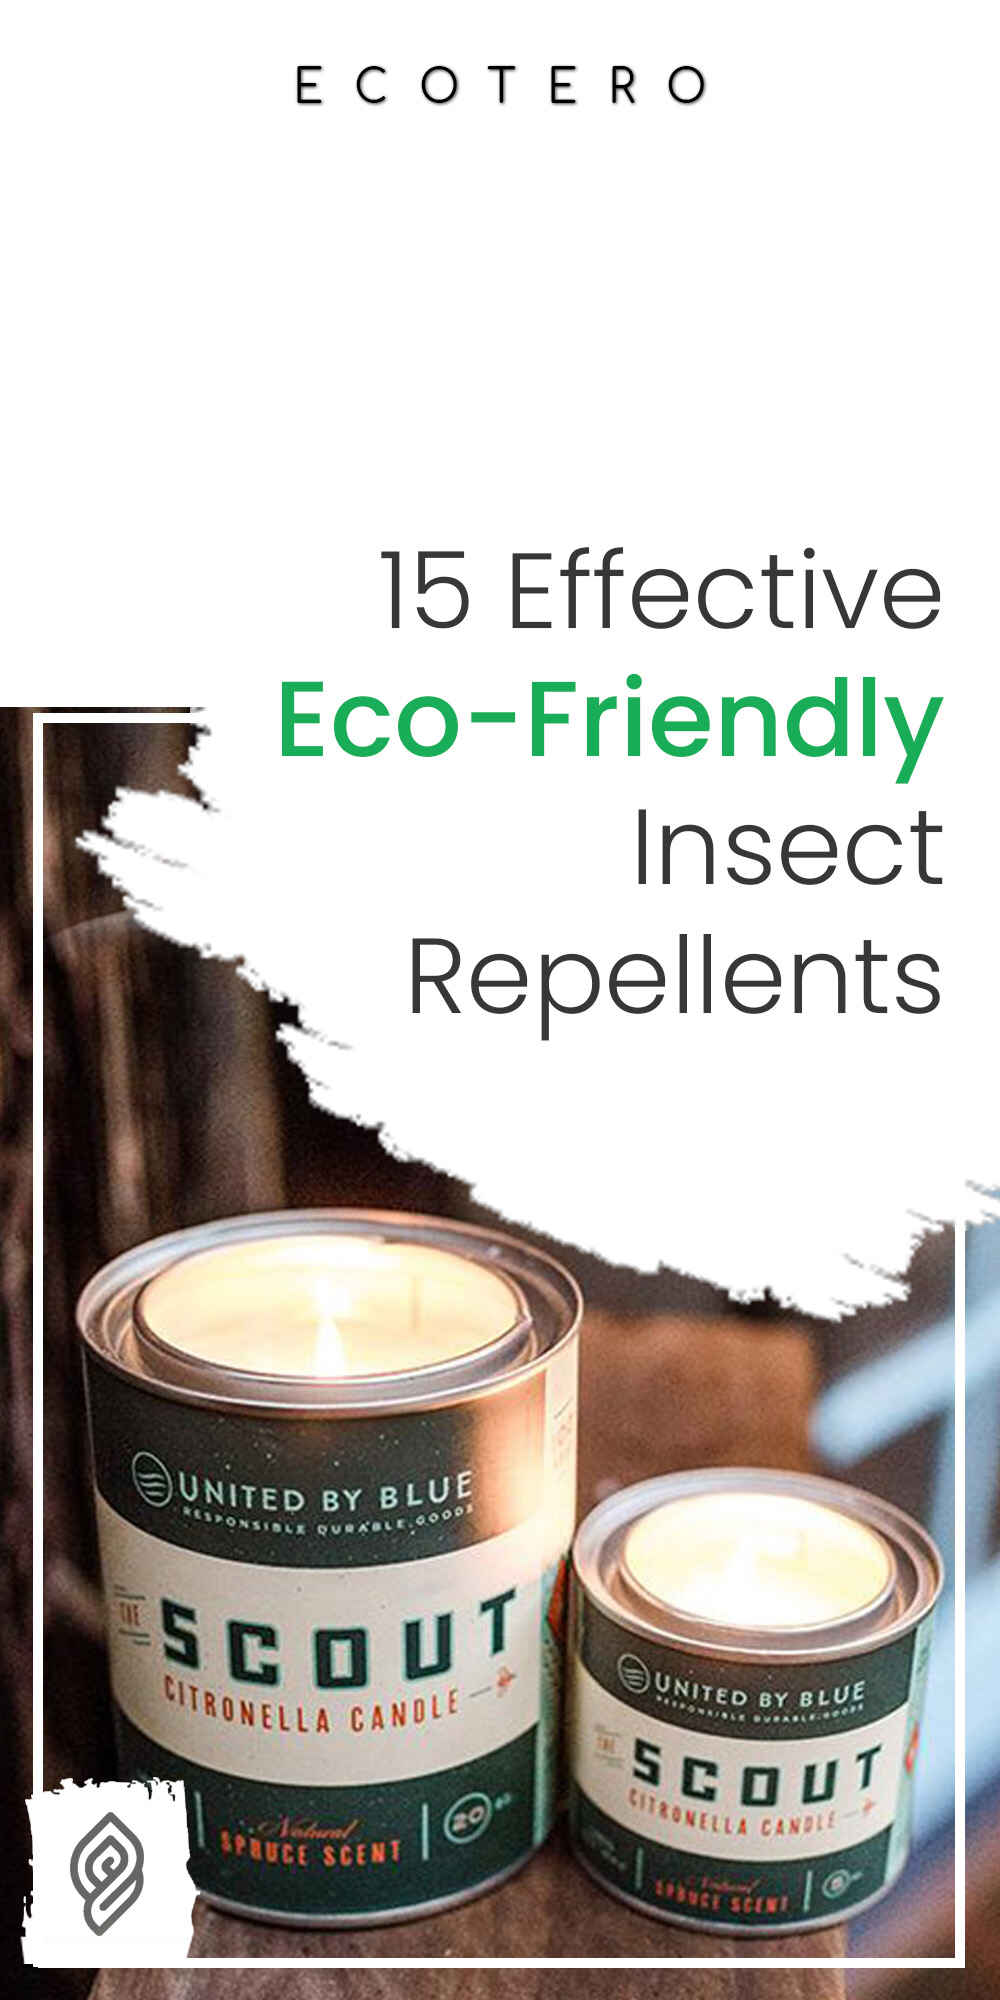 Best-Eco-Friendly-Insect-Repellents